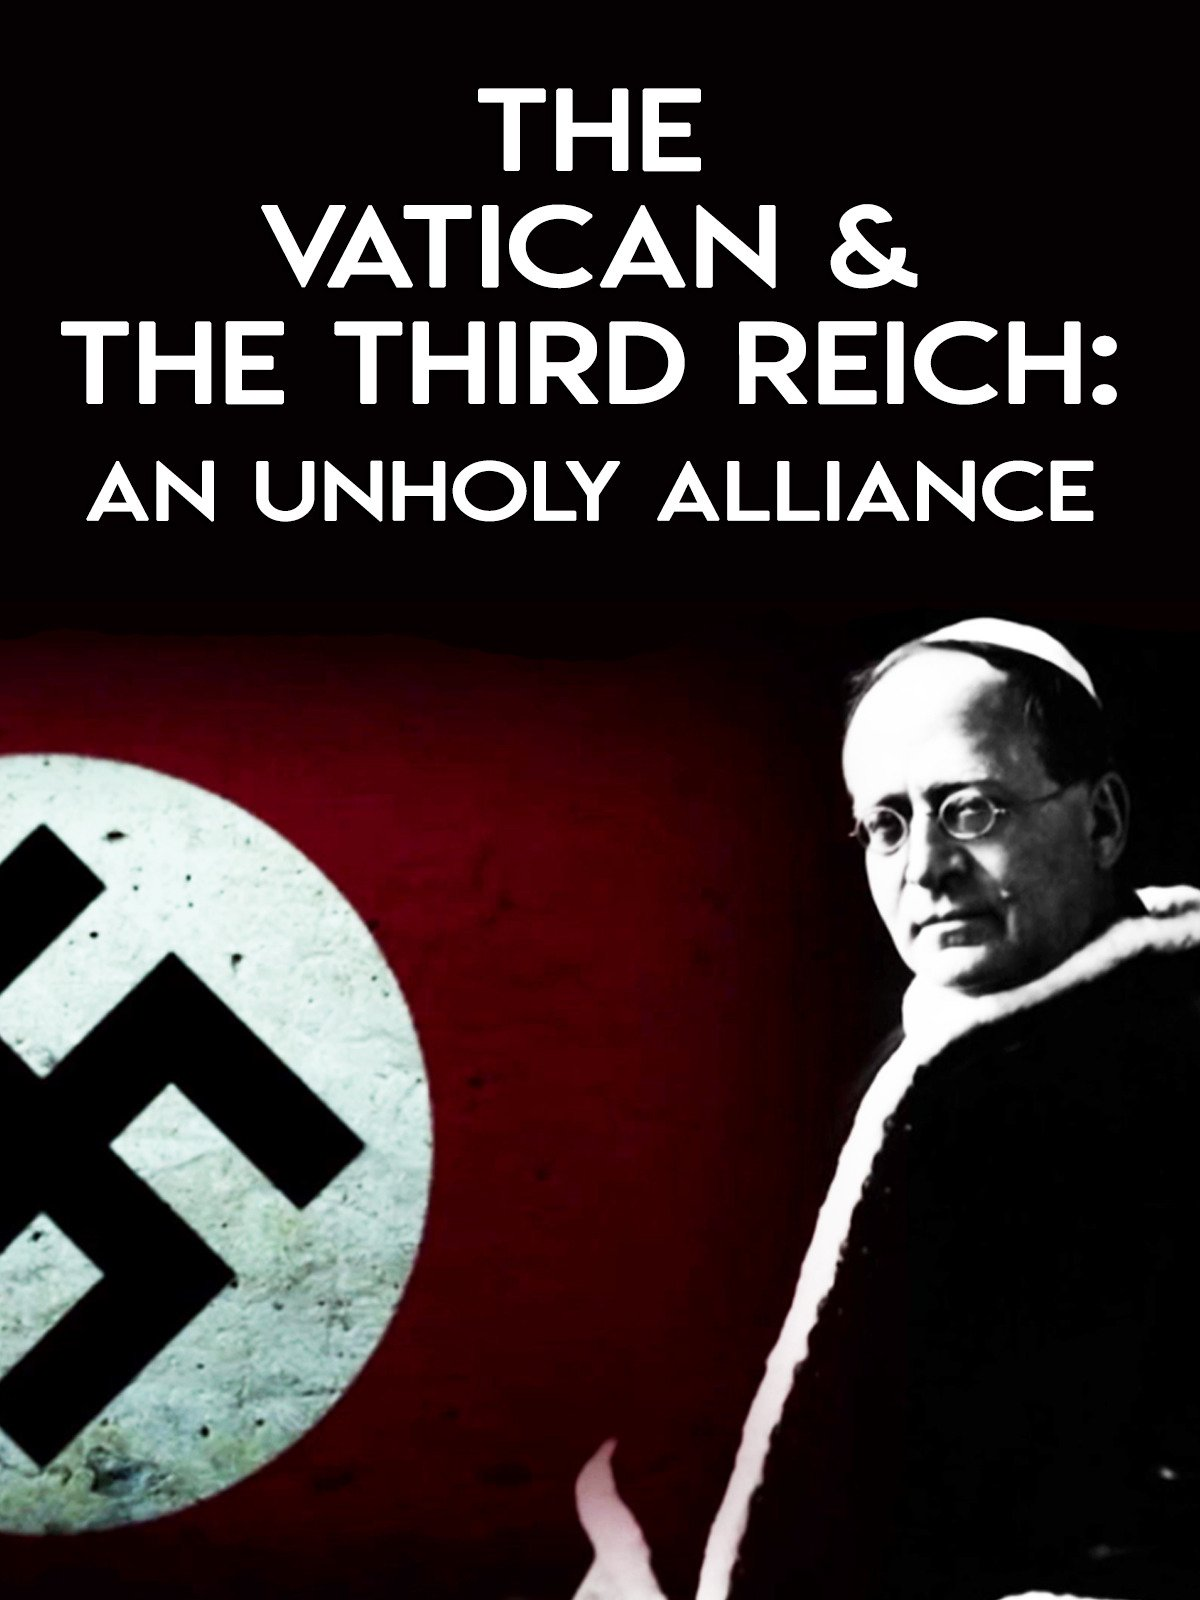 The Vatican & The Third Reich: An Unholy Alliance